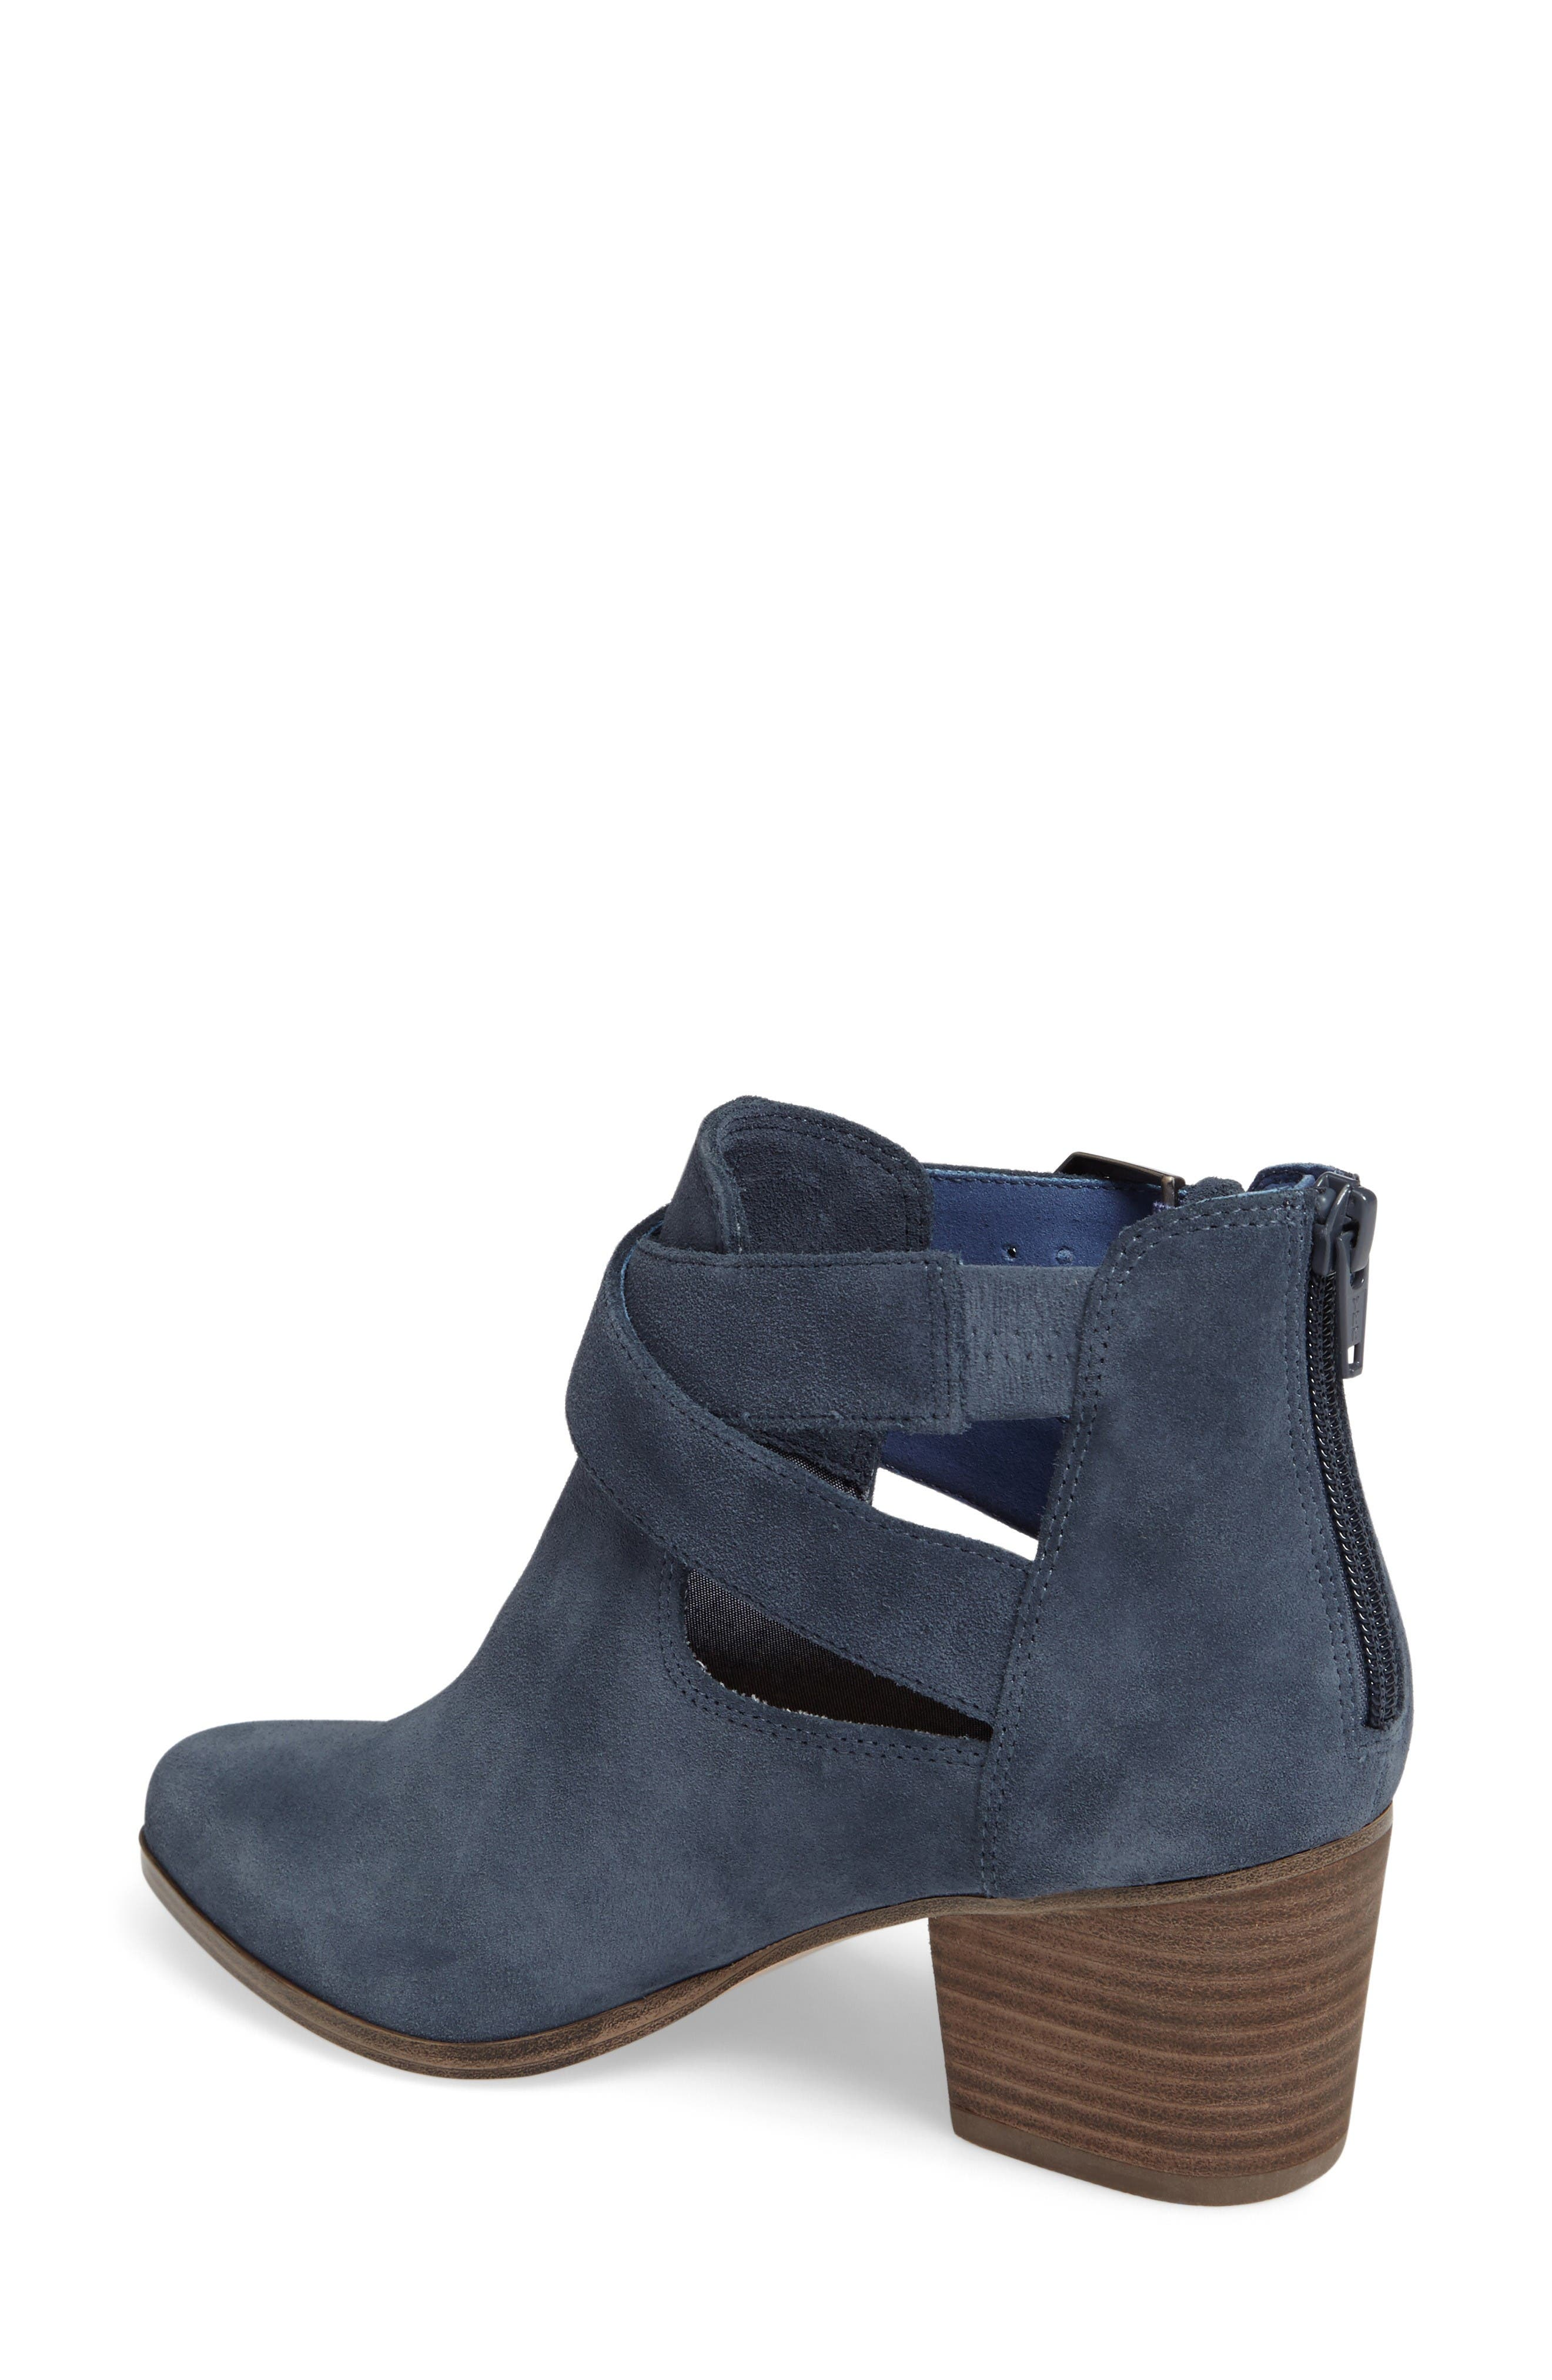 Alternate Image 2  - Sole Society Azure Bootie (Women)